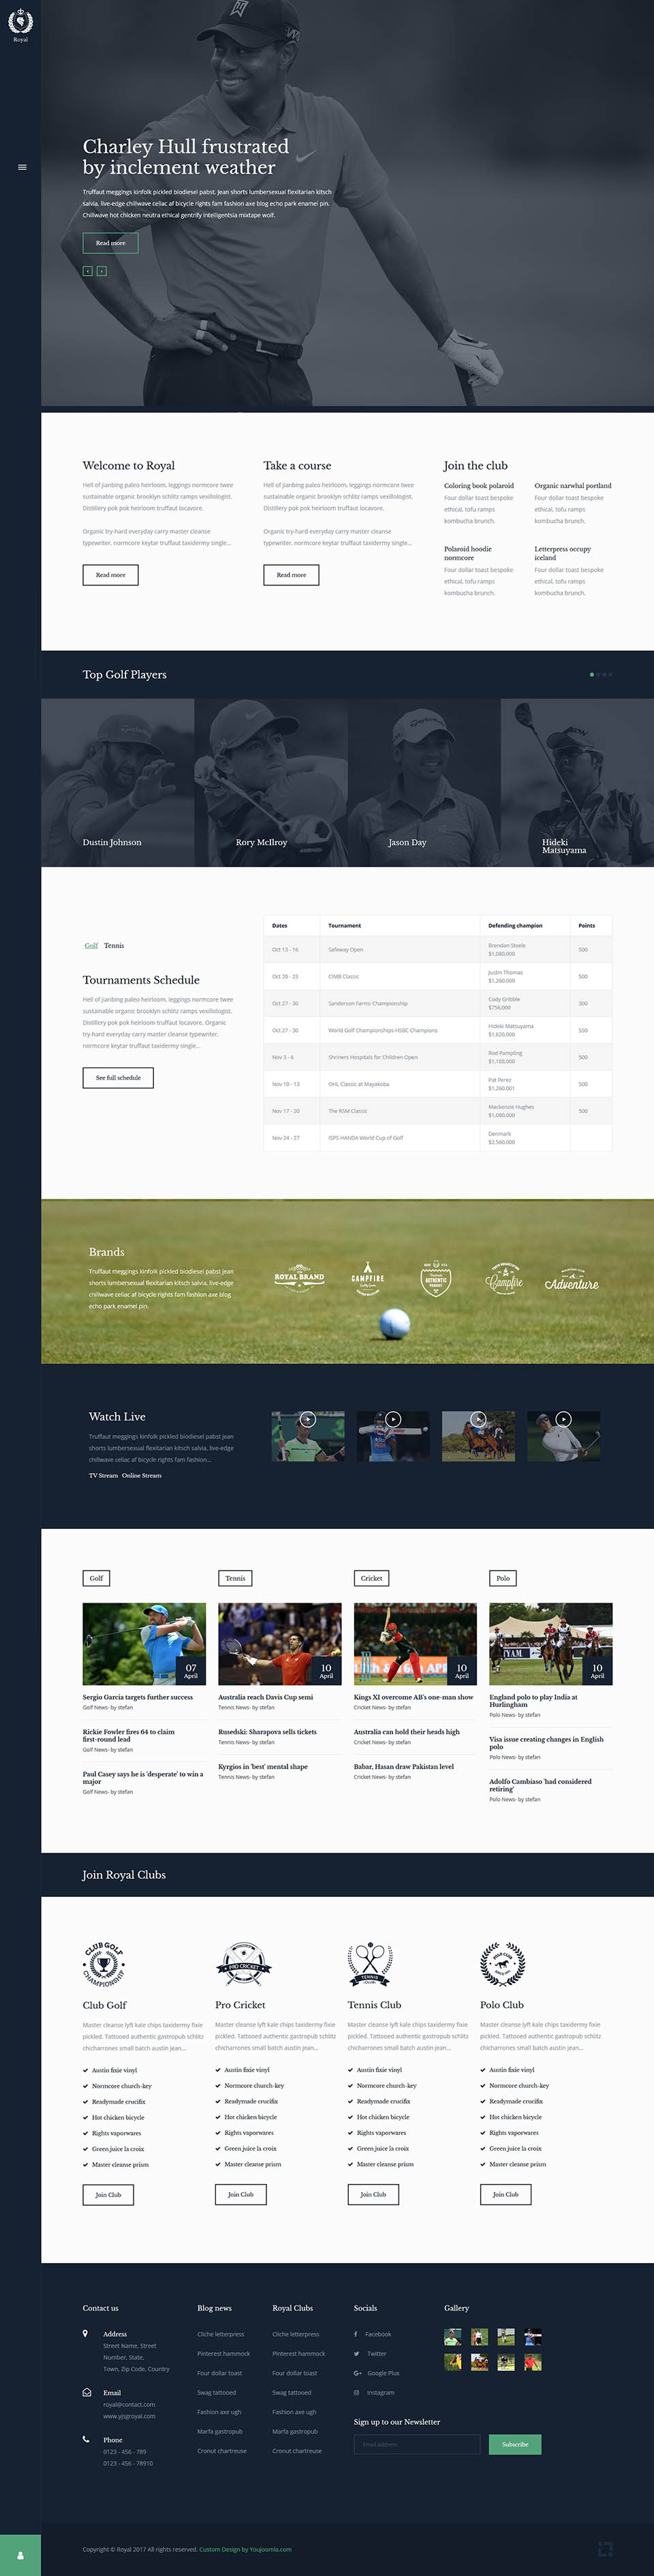 Youjoomla yj business report v1.0 template for joomla 2.5